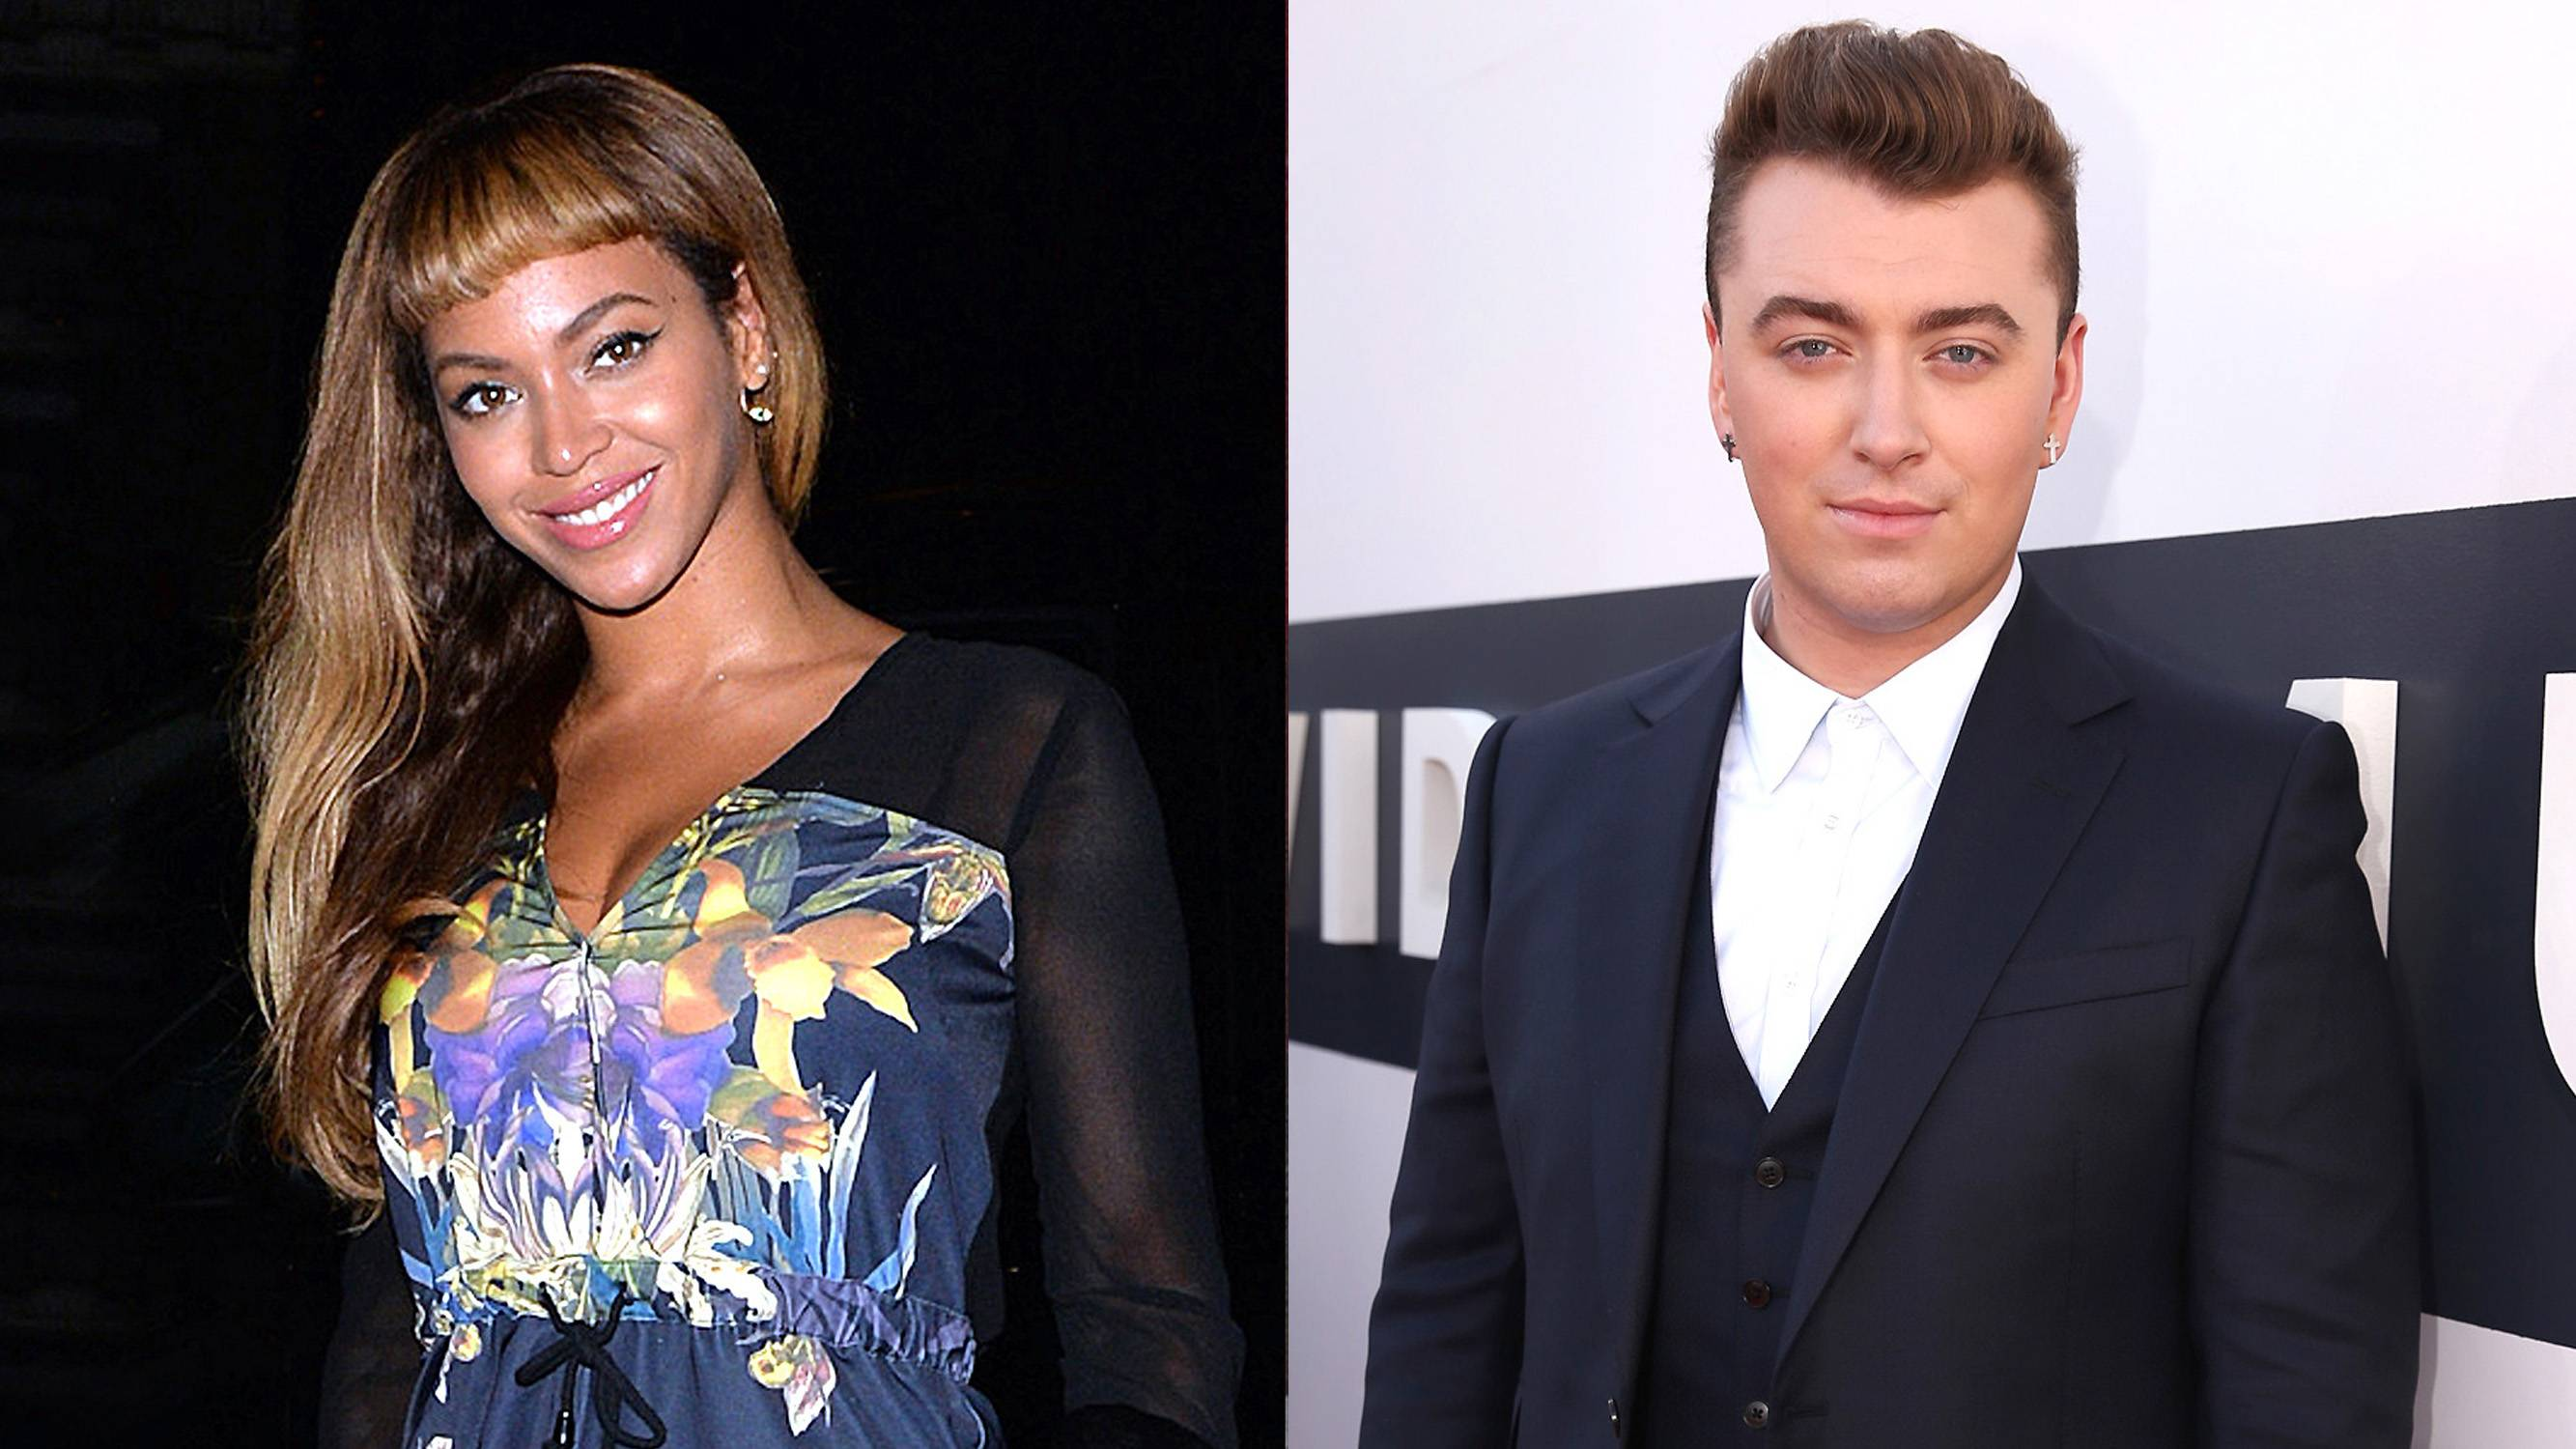 """Sam Smith Covers Beyonc? - Sam Smith was recorded in the shower singing his on version of Beyonc?'s """"Drunk in Love,"""" and he did a good job. Listen here.   (Photos from left: Gotcha Images/Splash News, Christopher Polk/Getty Images for MTV)"""